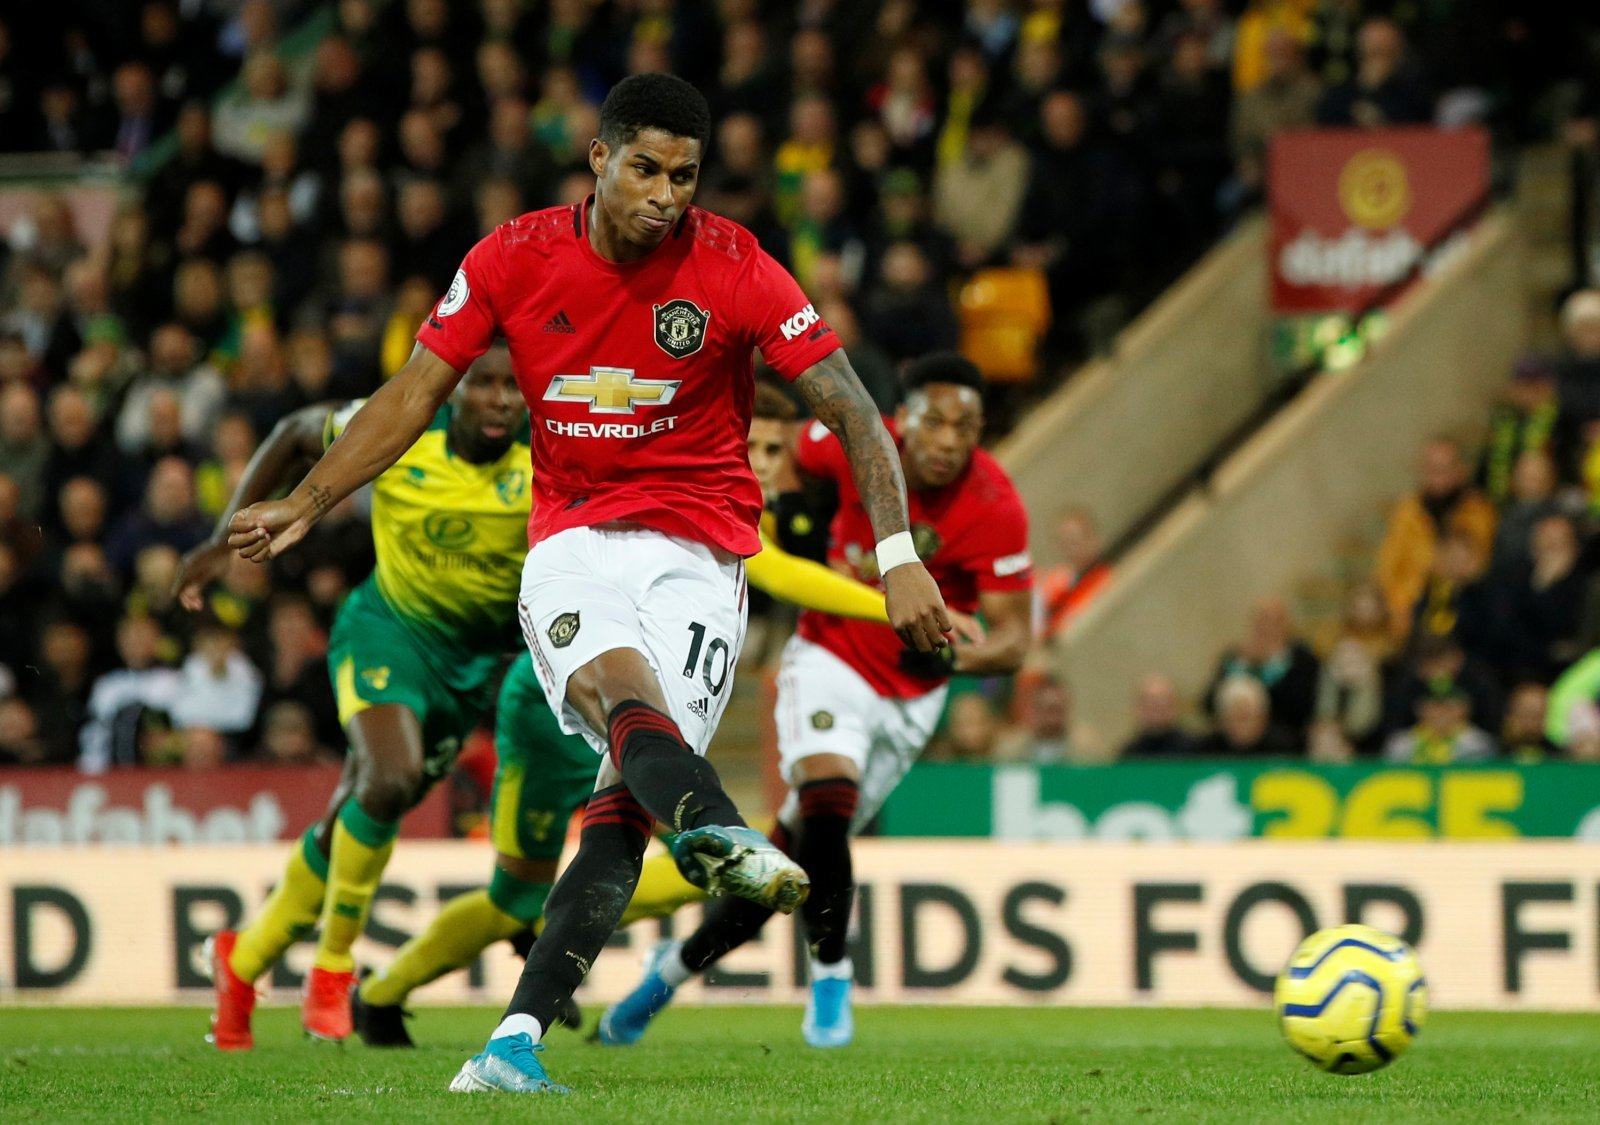 Manchester United: Fans go crazy after piece of skill from Marcus Rashford